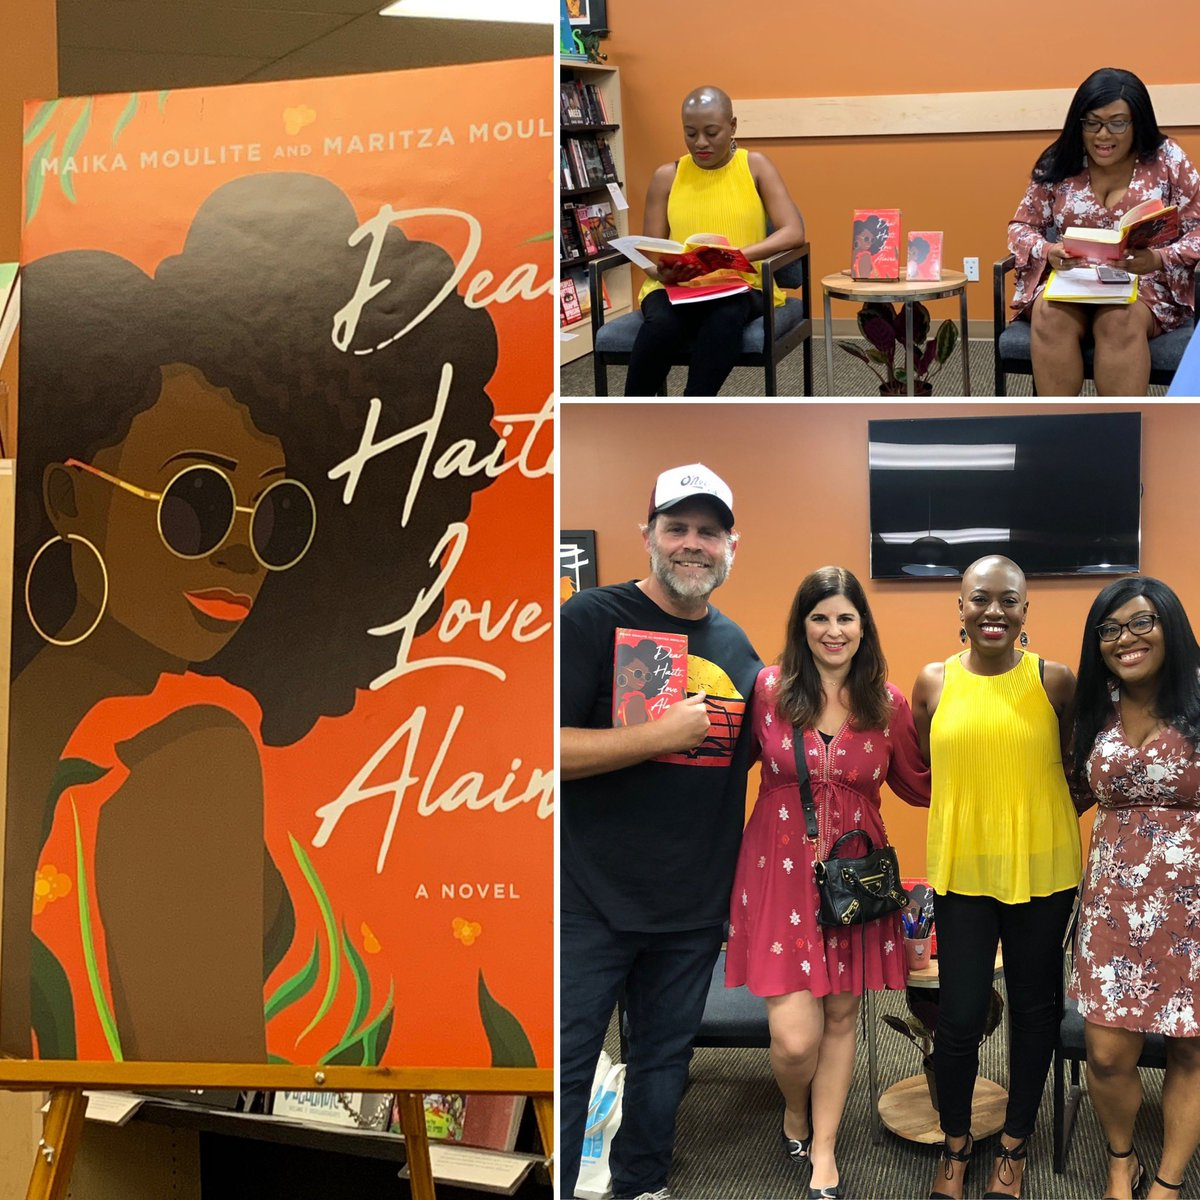 So much fun with @MaritzaMoulite and @maikamoulite celebrating Dear Haiti, Love Alaine at @MystGalaxyBooks and even more fun when @baronchrisbaron shows up!